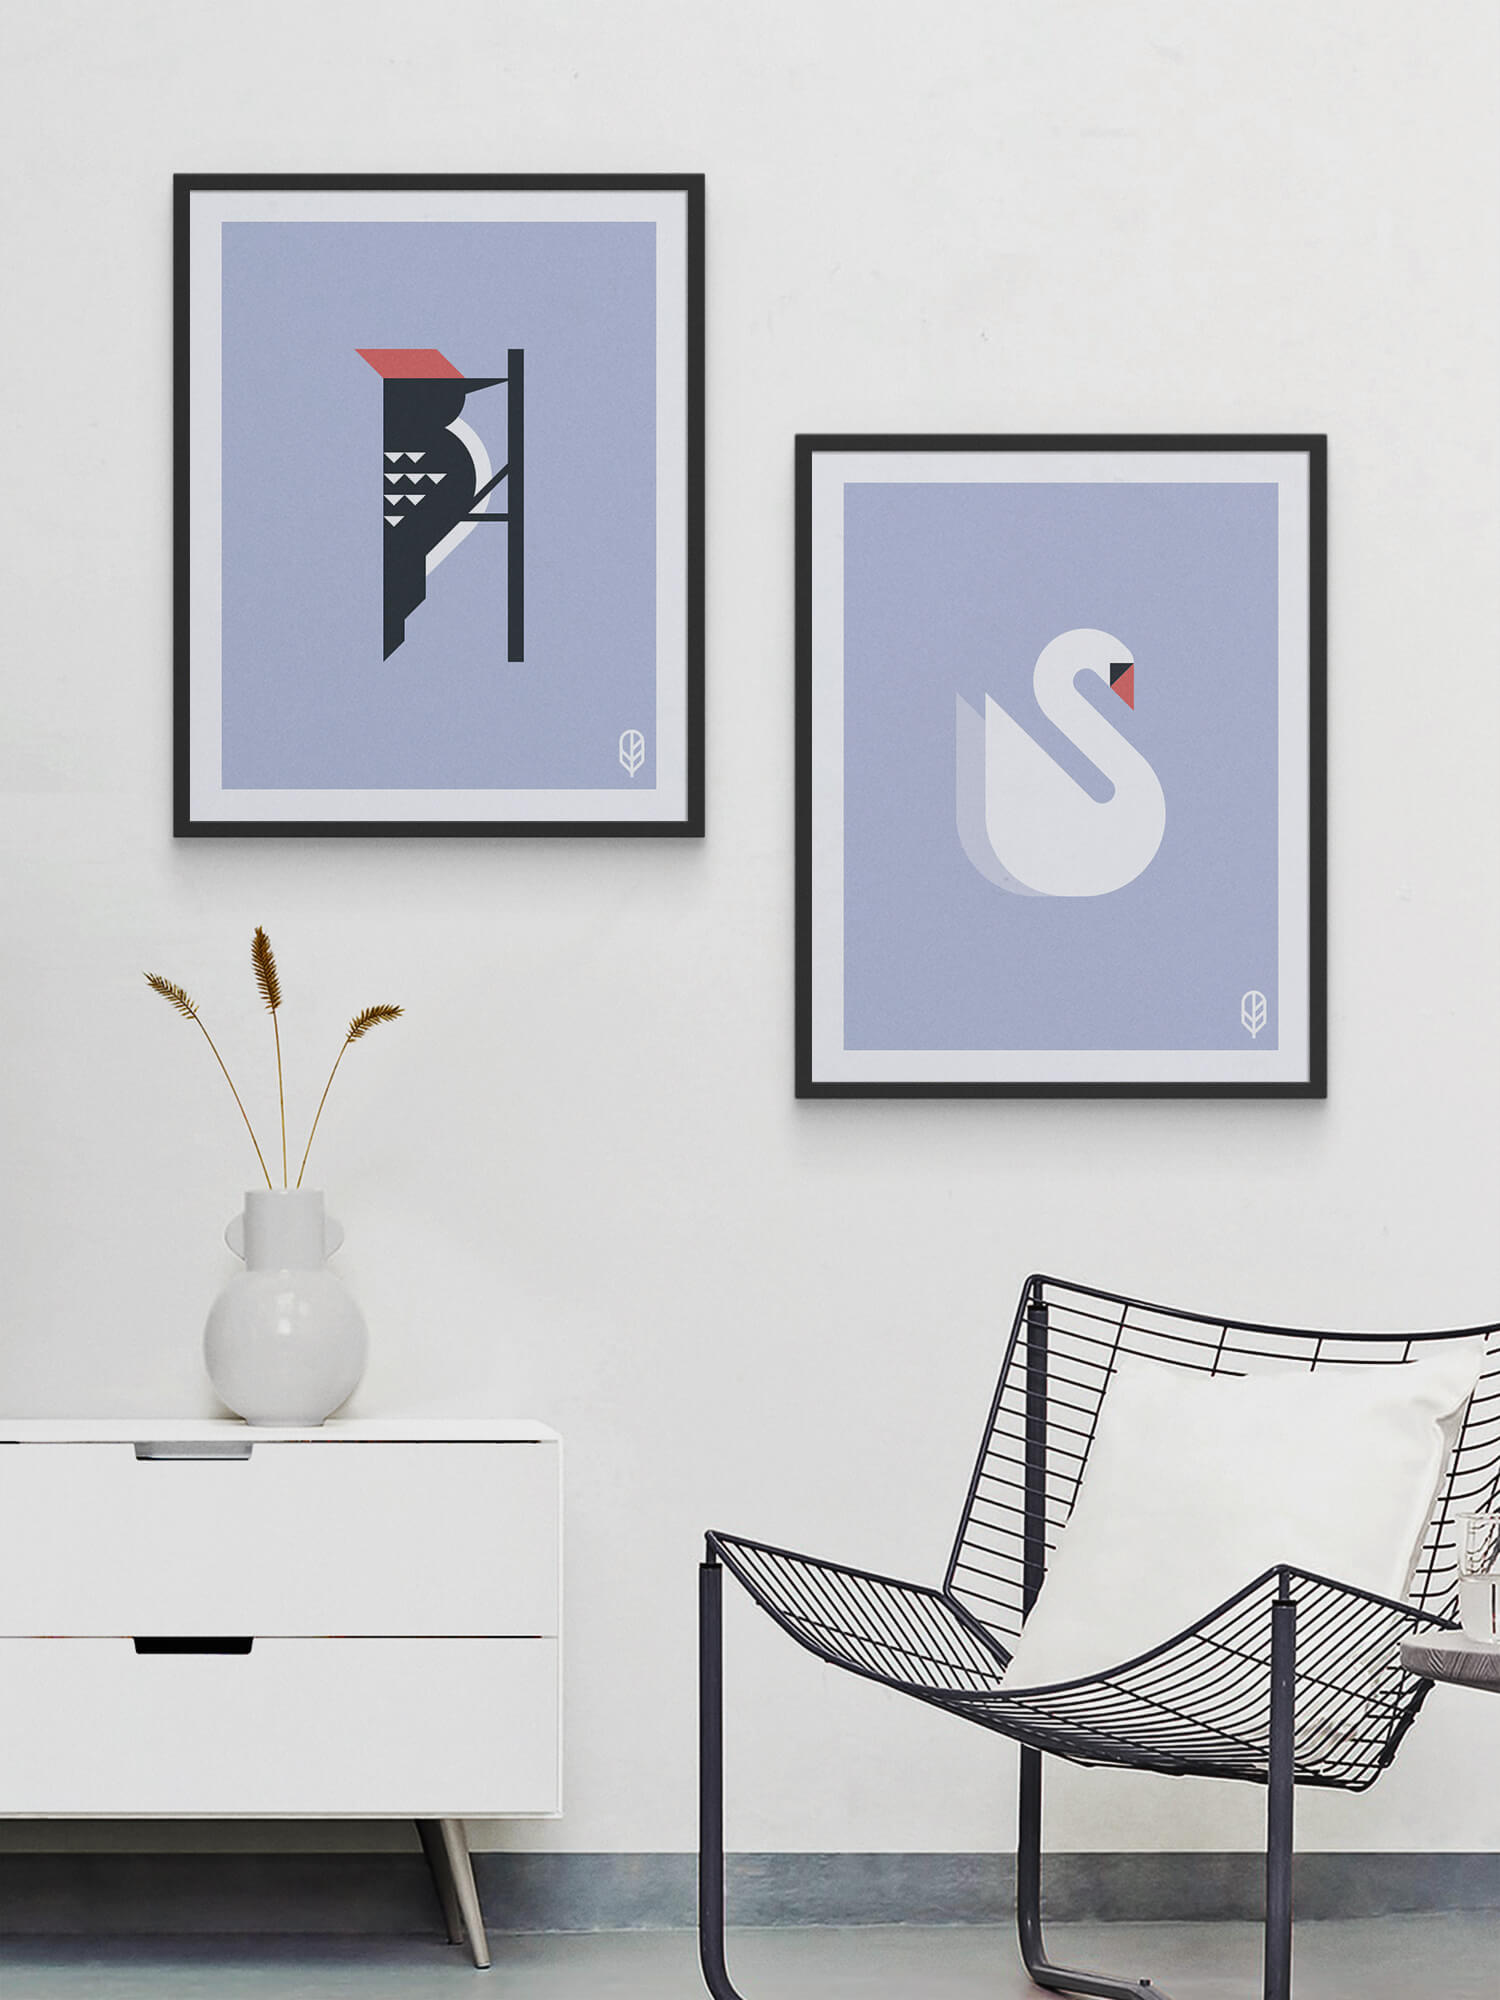 Two framed Flock Together prints displaying the illustrations of a woodpecker and a swan on the wall of a modern apartment